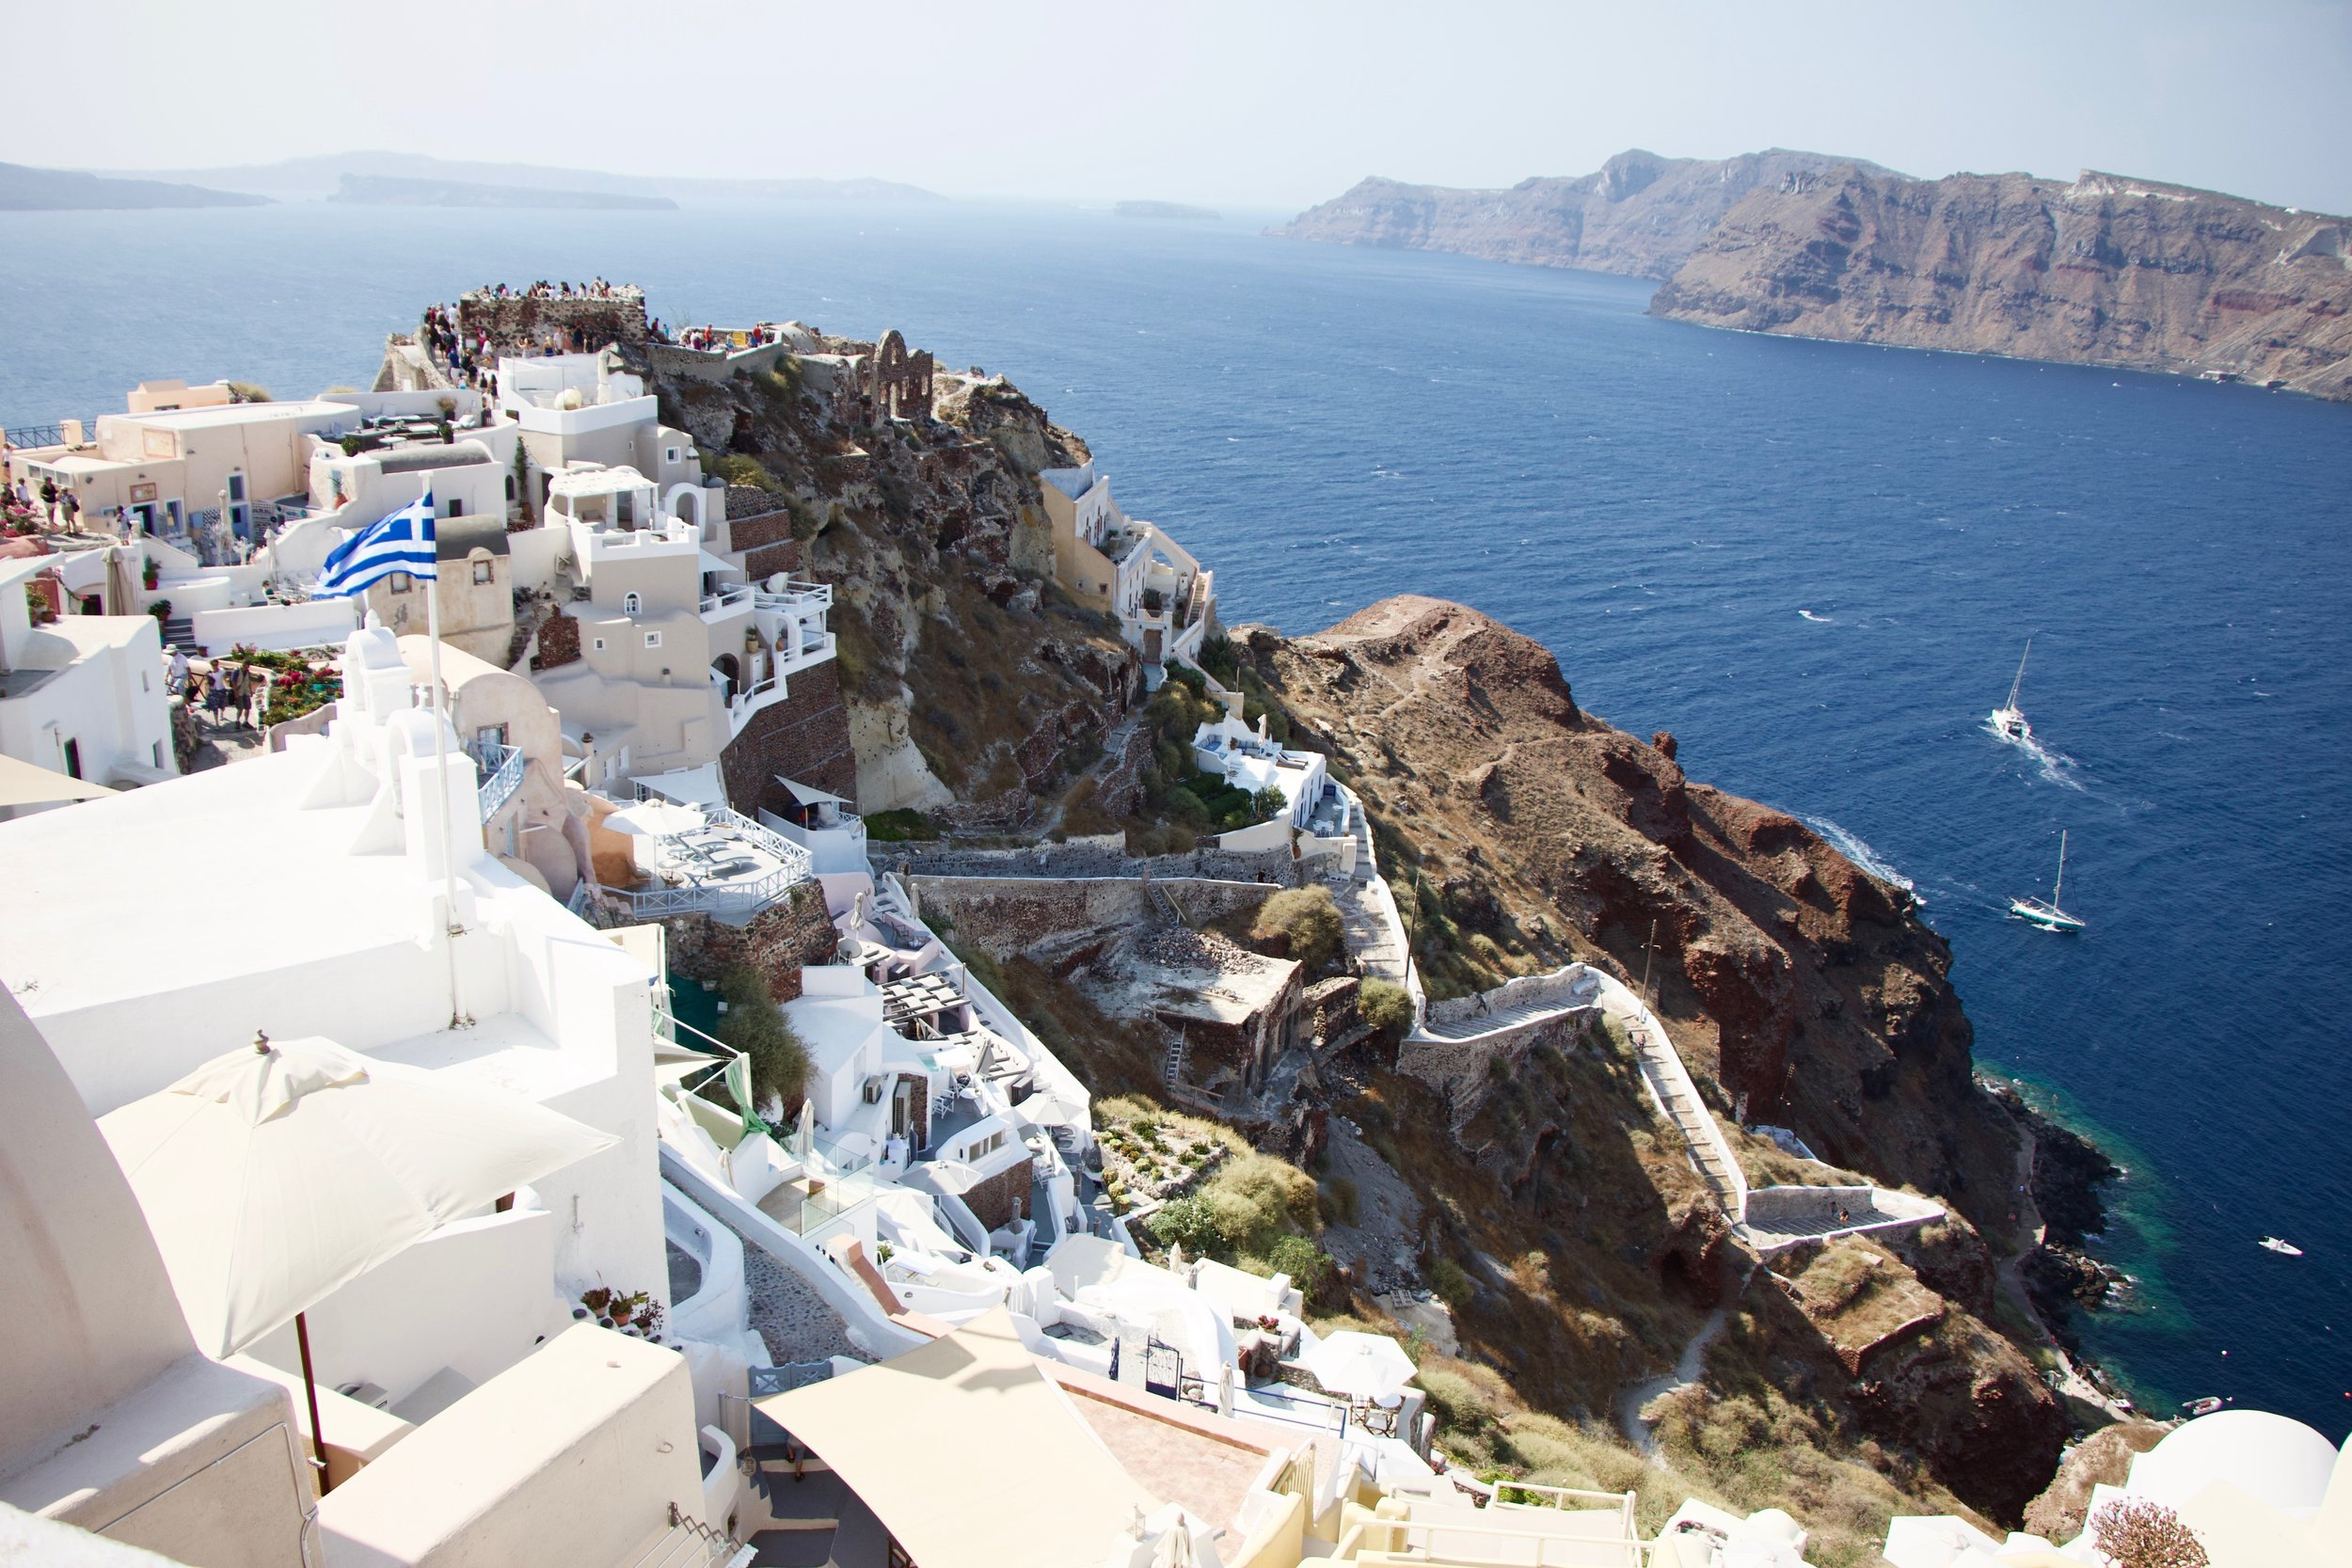 Santorini's iconic white buildings sitting on a hilltop above the deep blue ocean.